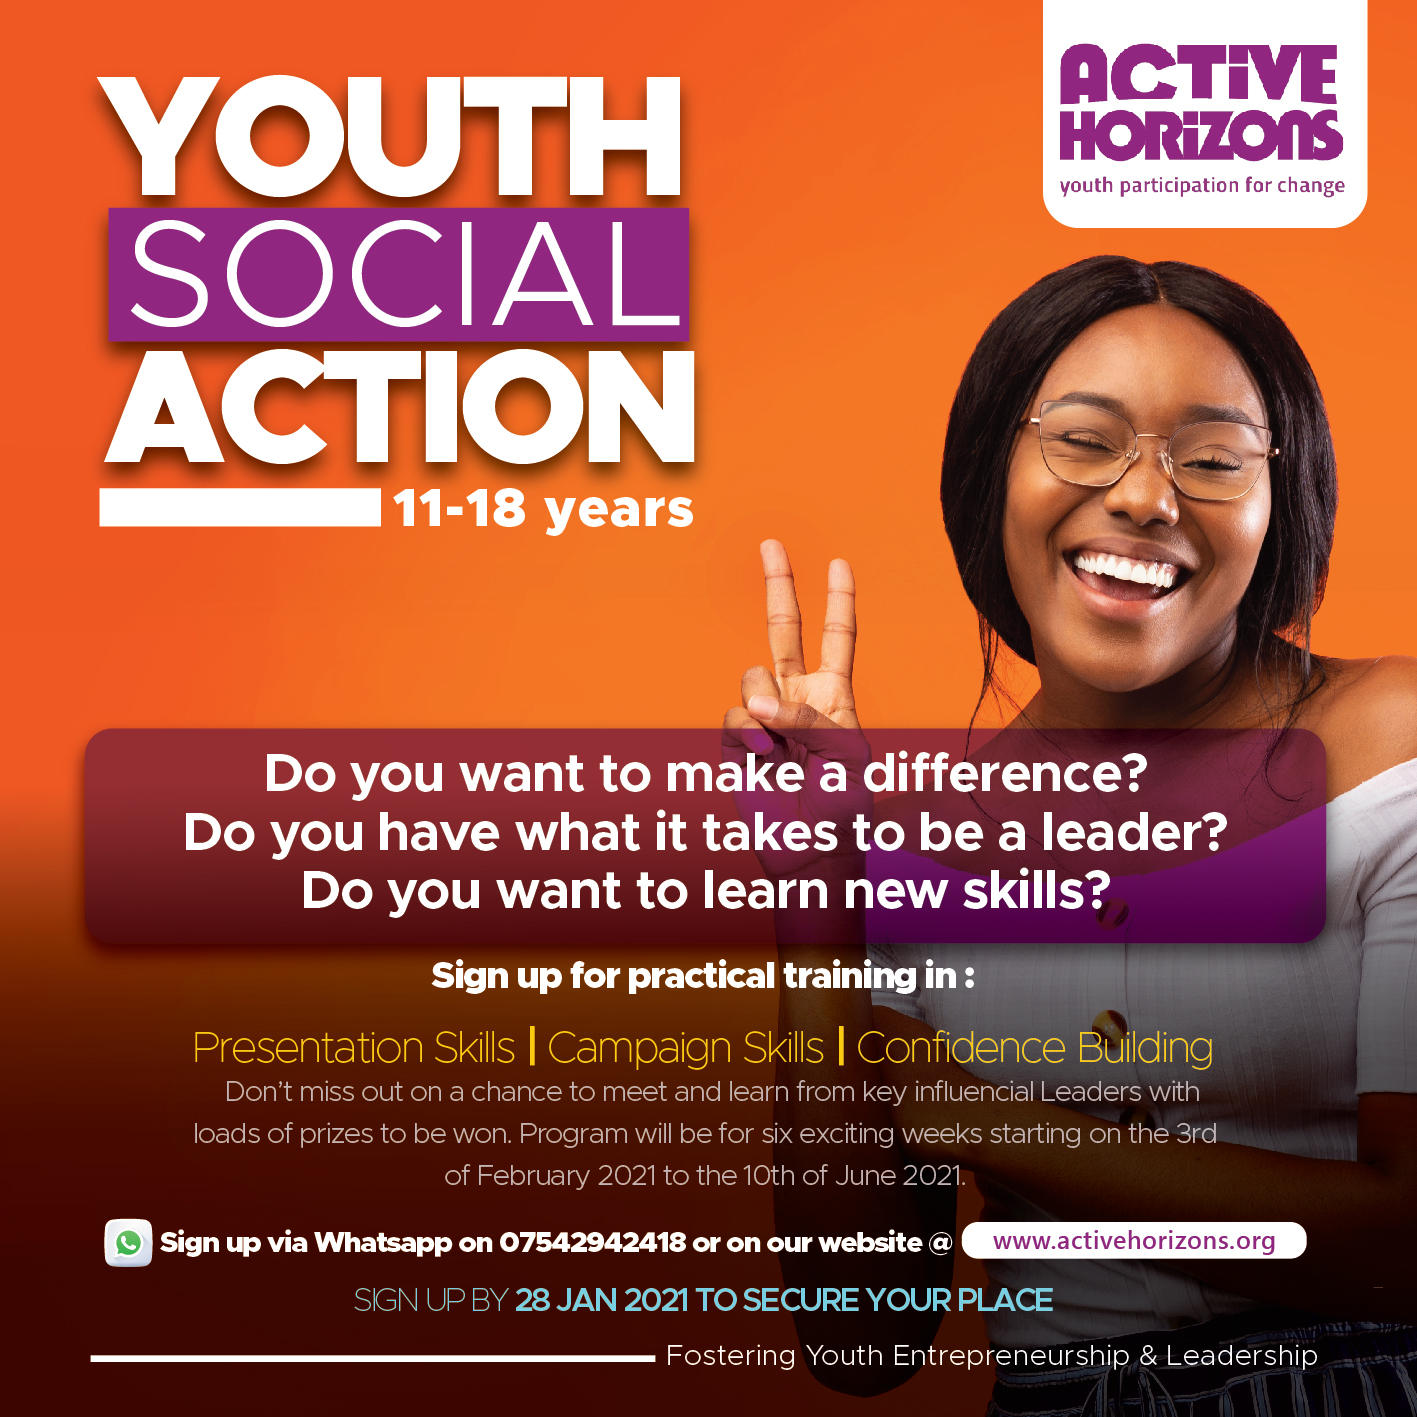 Youth Social Action Program